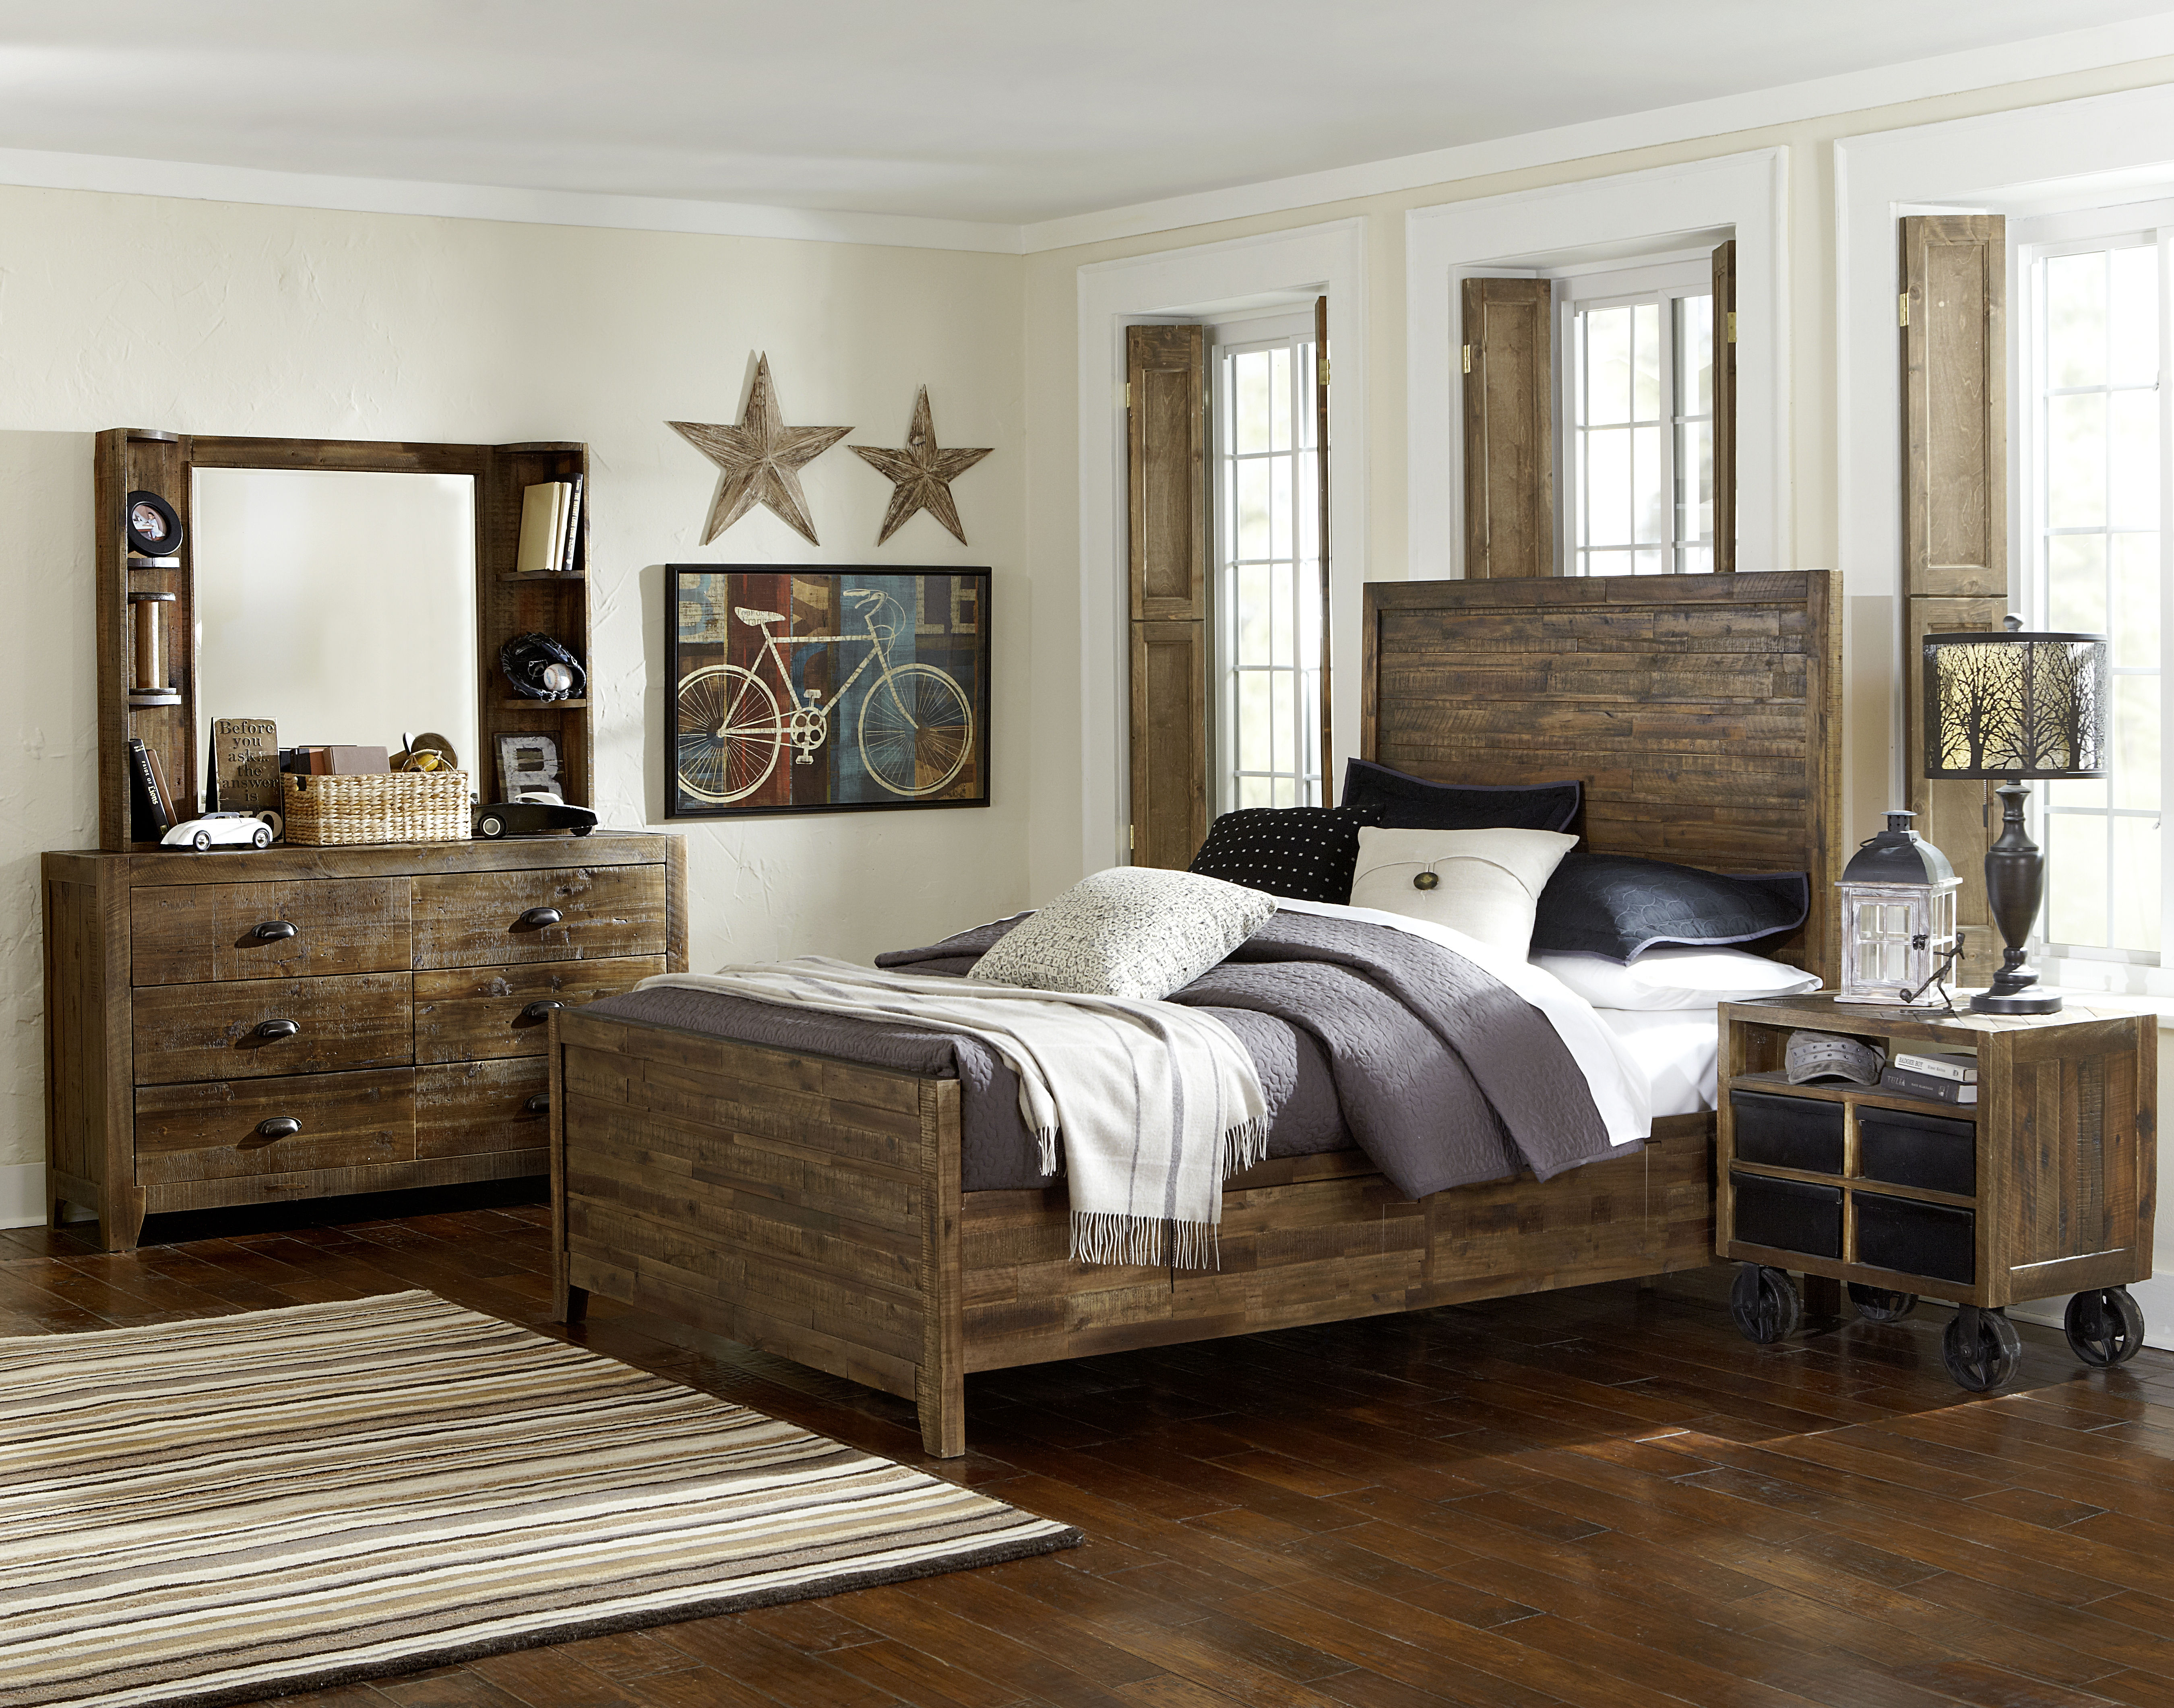 Braxton distressed natural wood glass 2pc bedroom set w - Distressed bedroom furniture sets ...